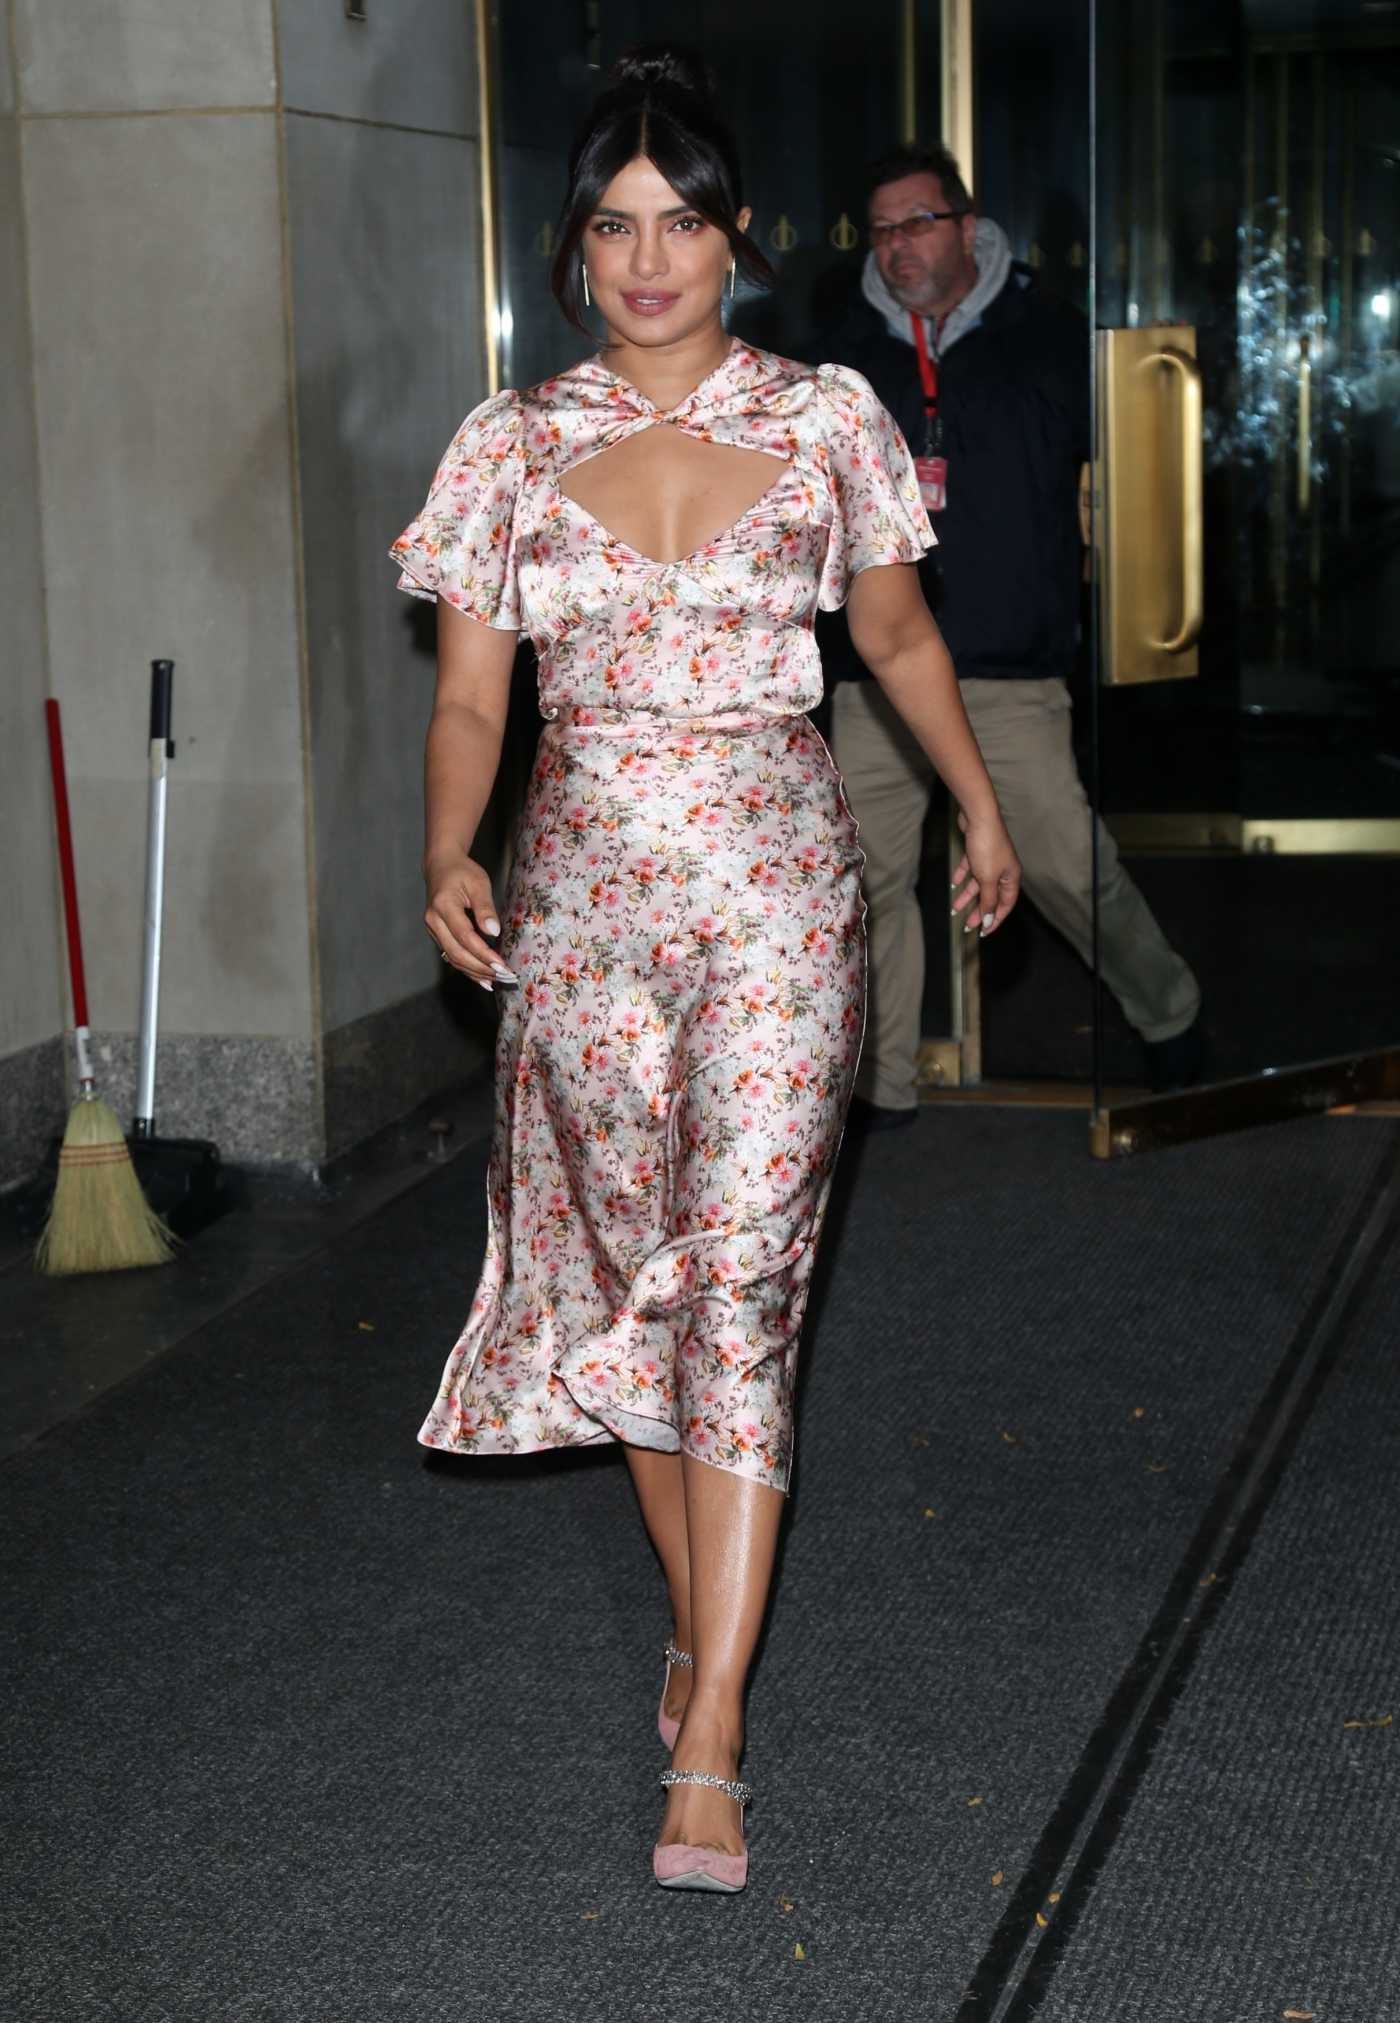 Priyanka Chopra in a Floral Dress Arrives at the Today Show in New York 10/08/2019